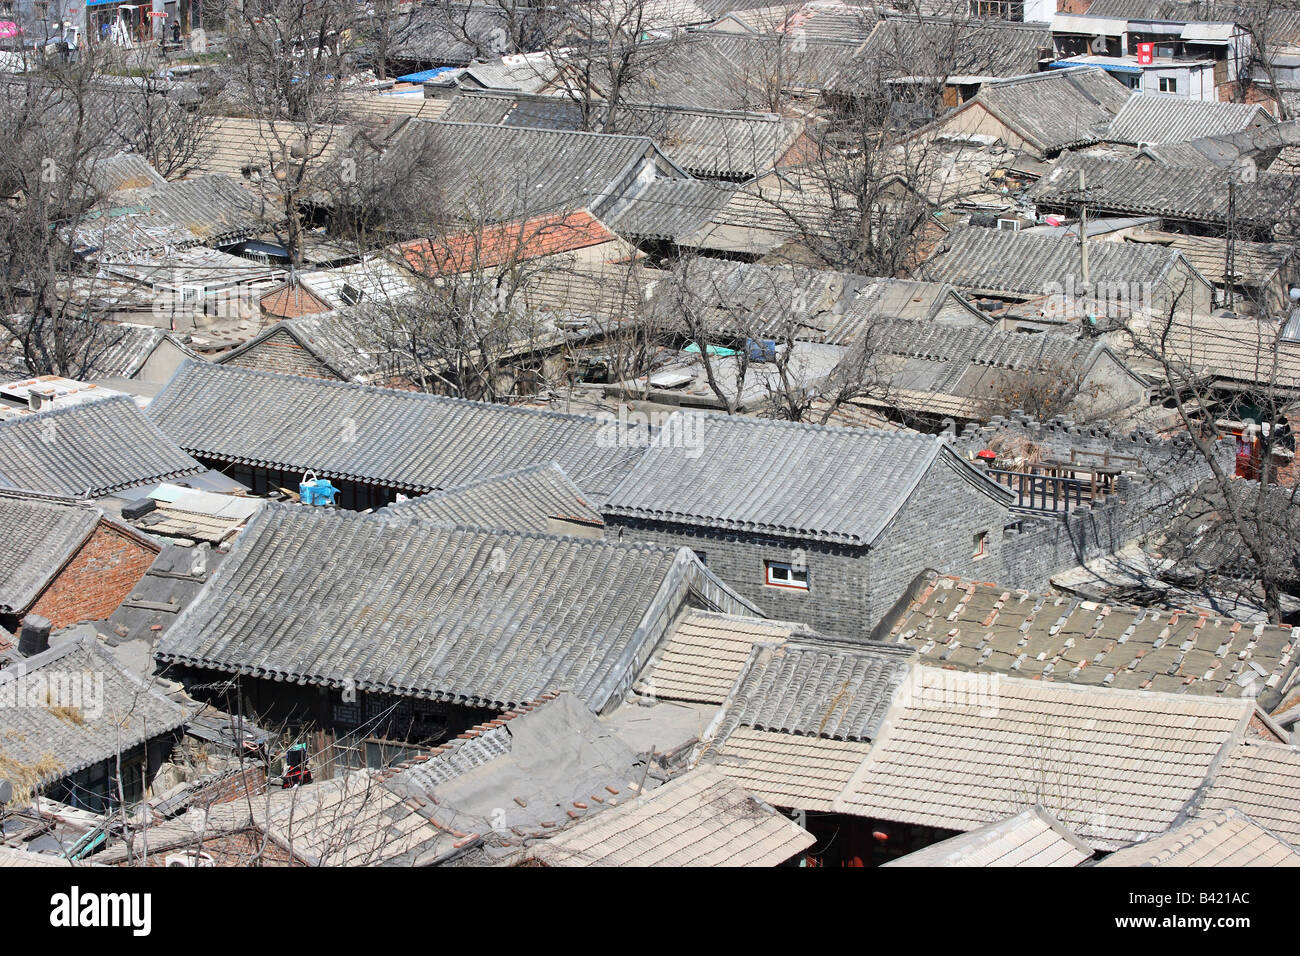 Roofs of impoverished houses in Beijing, China - Stock Image